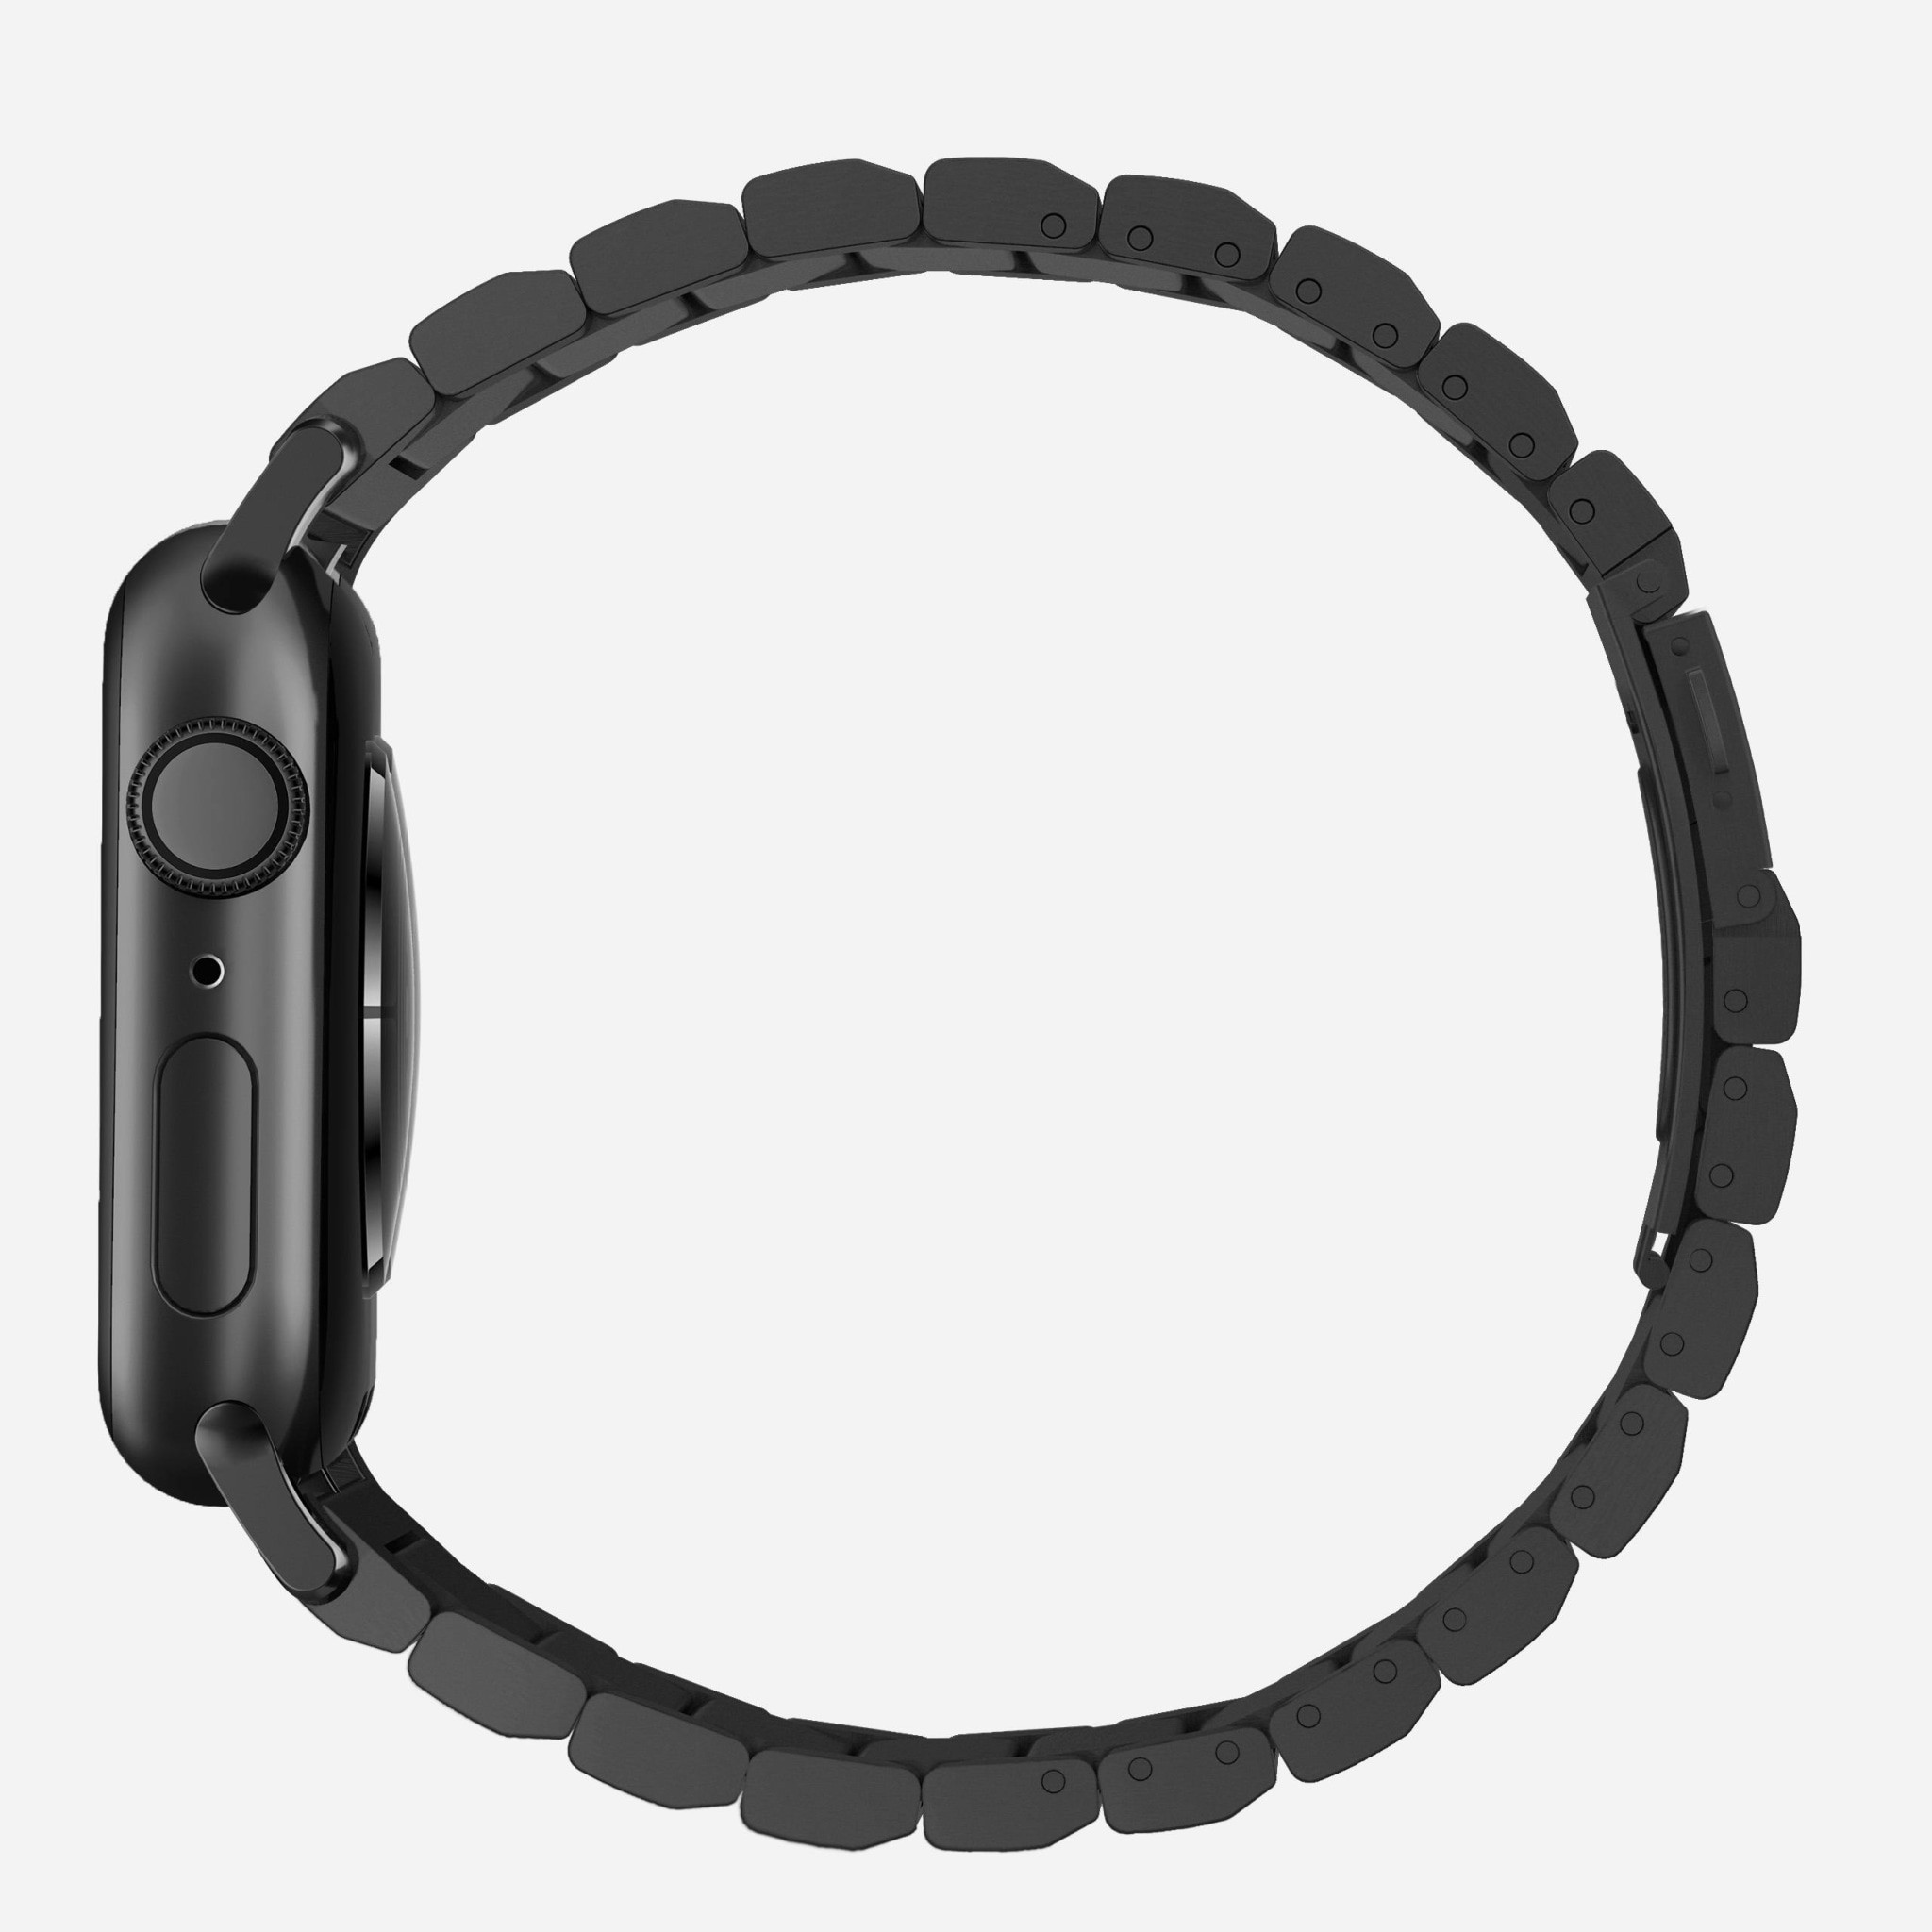 Nomad - Steel Band for Apple Watch 42/44mm - Black, NM1A4HB000